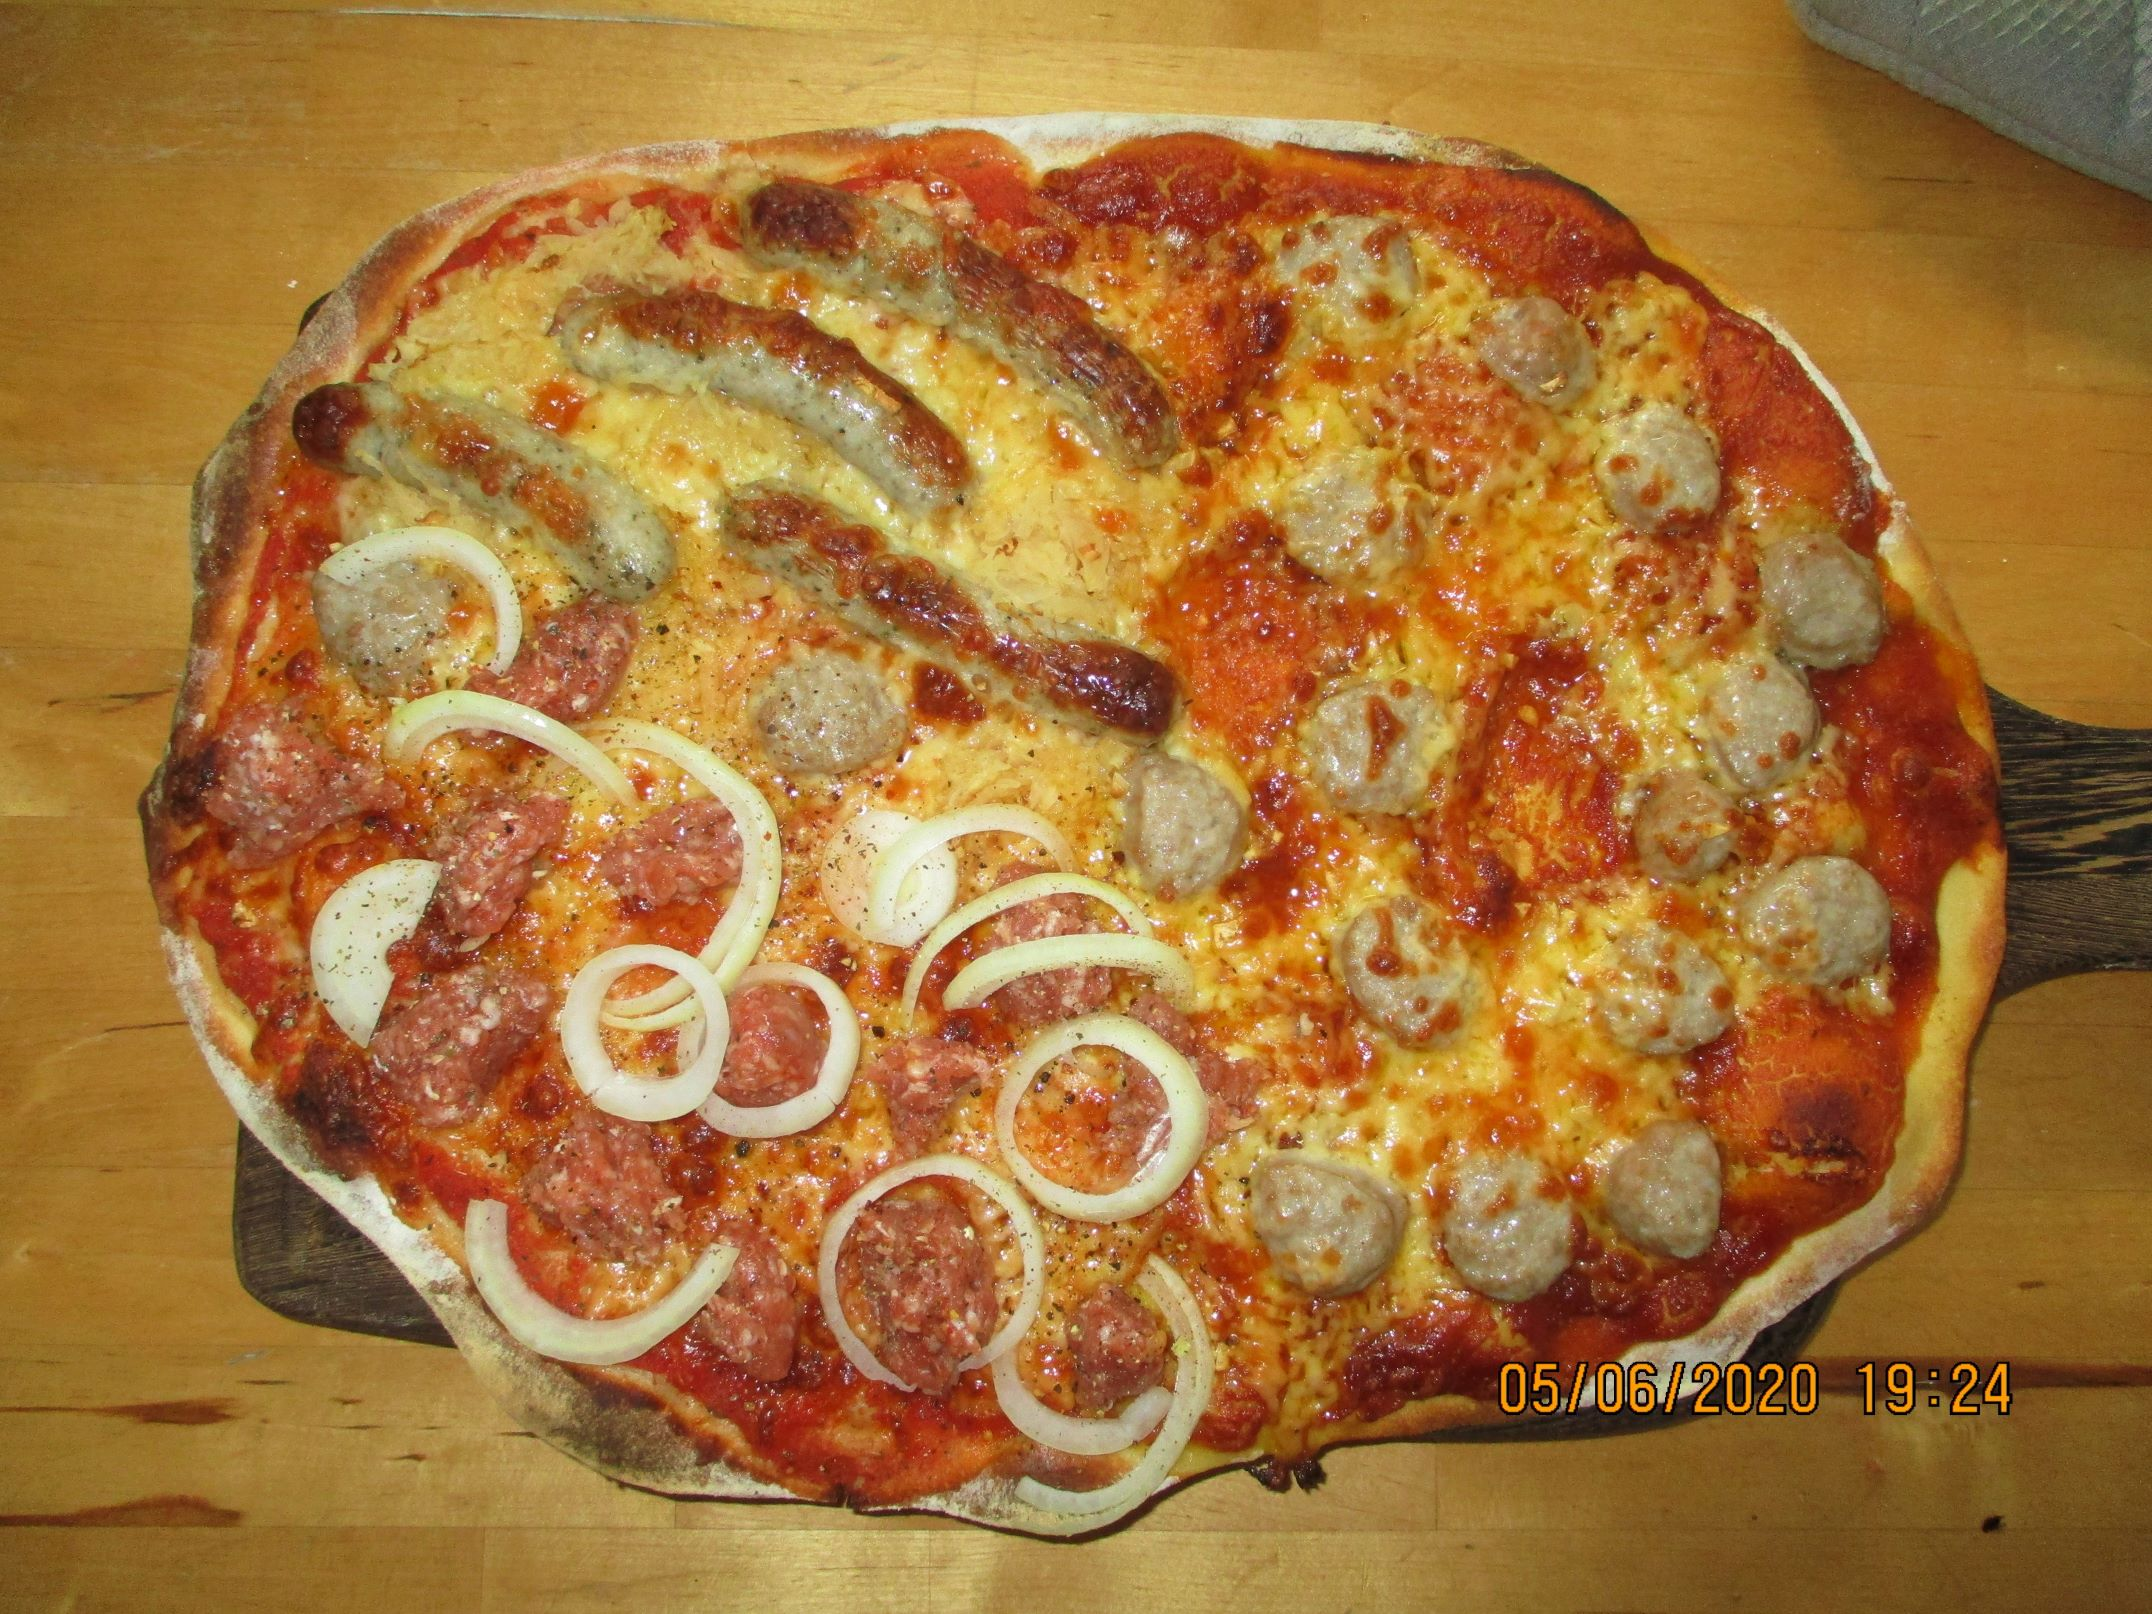 Pizza Germanica with Currywurst, Bratwurst, Sauerkraut and Mett.